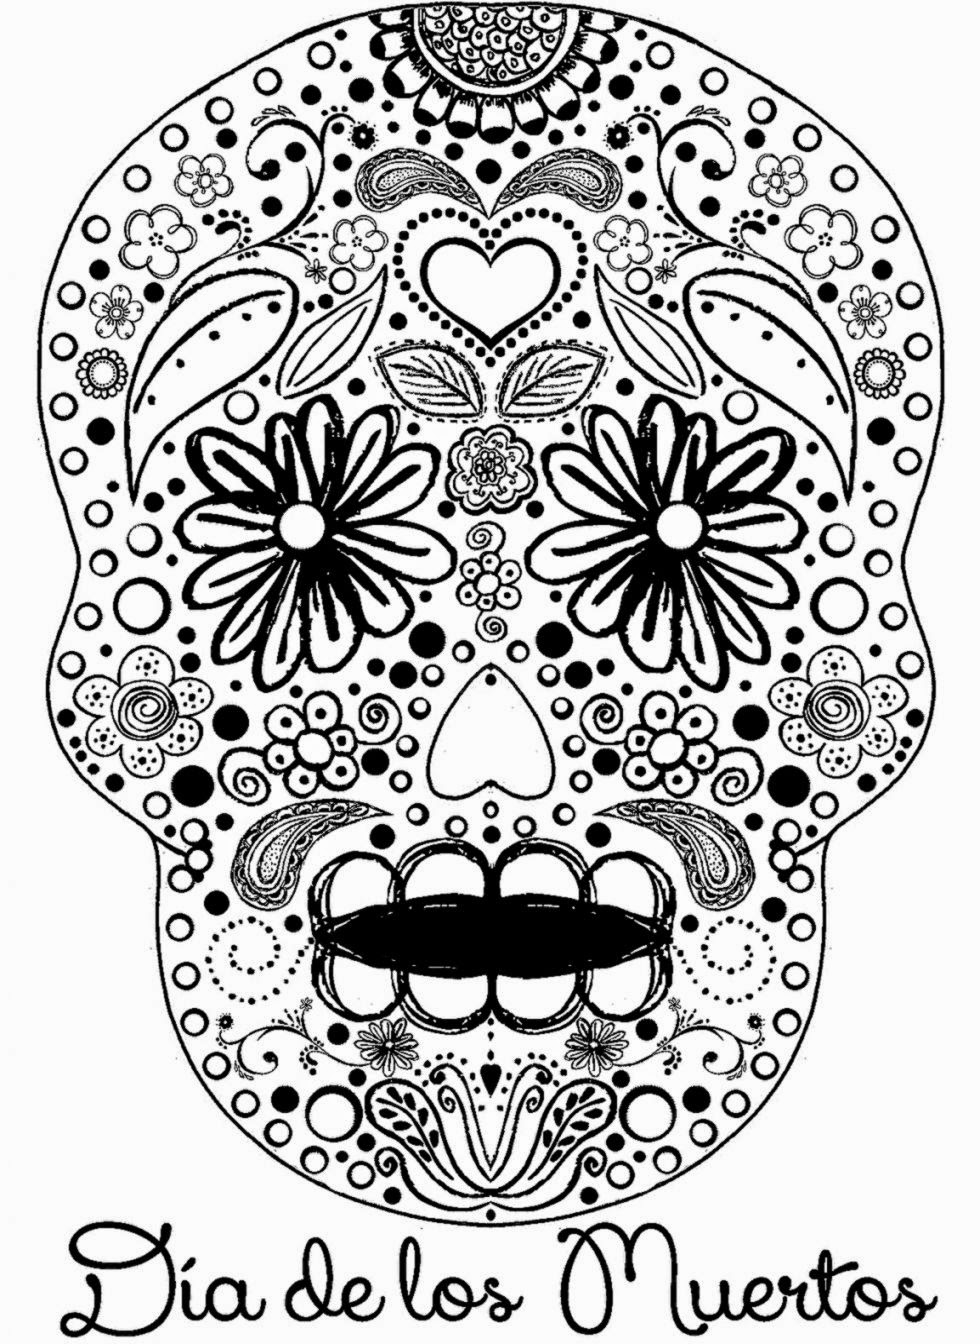 worksheet Day Of The Dead Worksheets day of the dead coloring pages coloringpages4kid